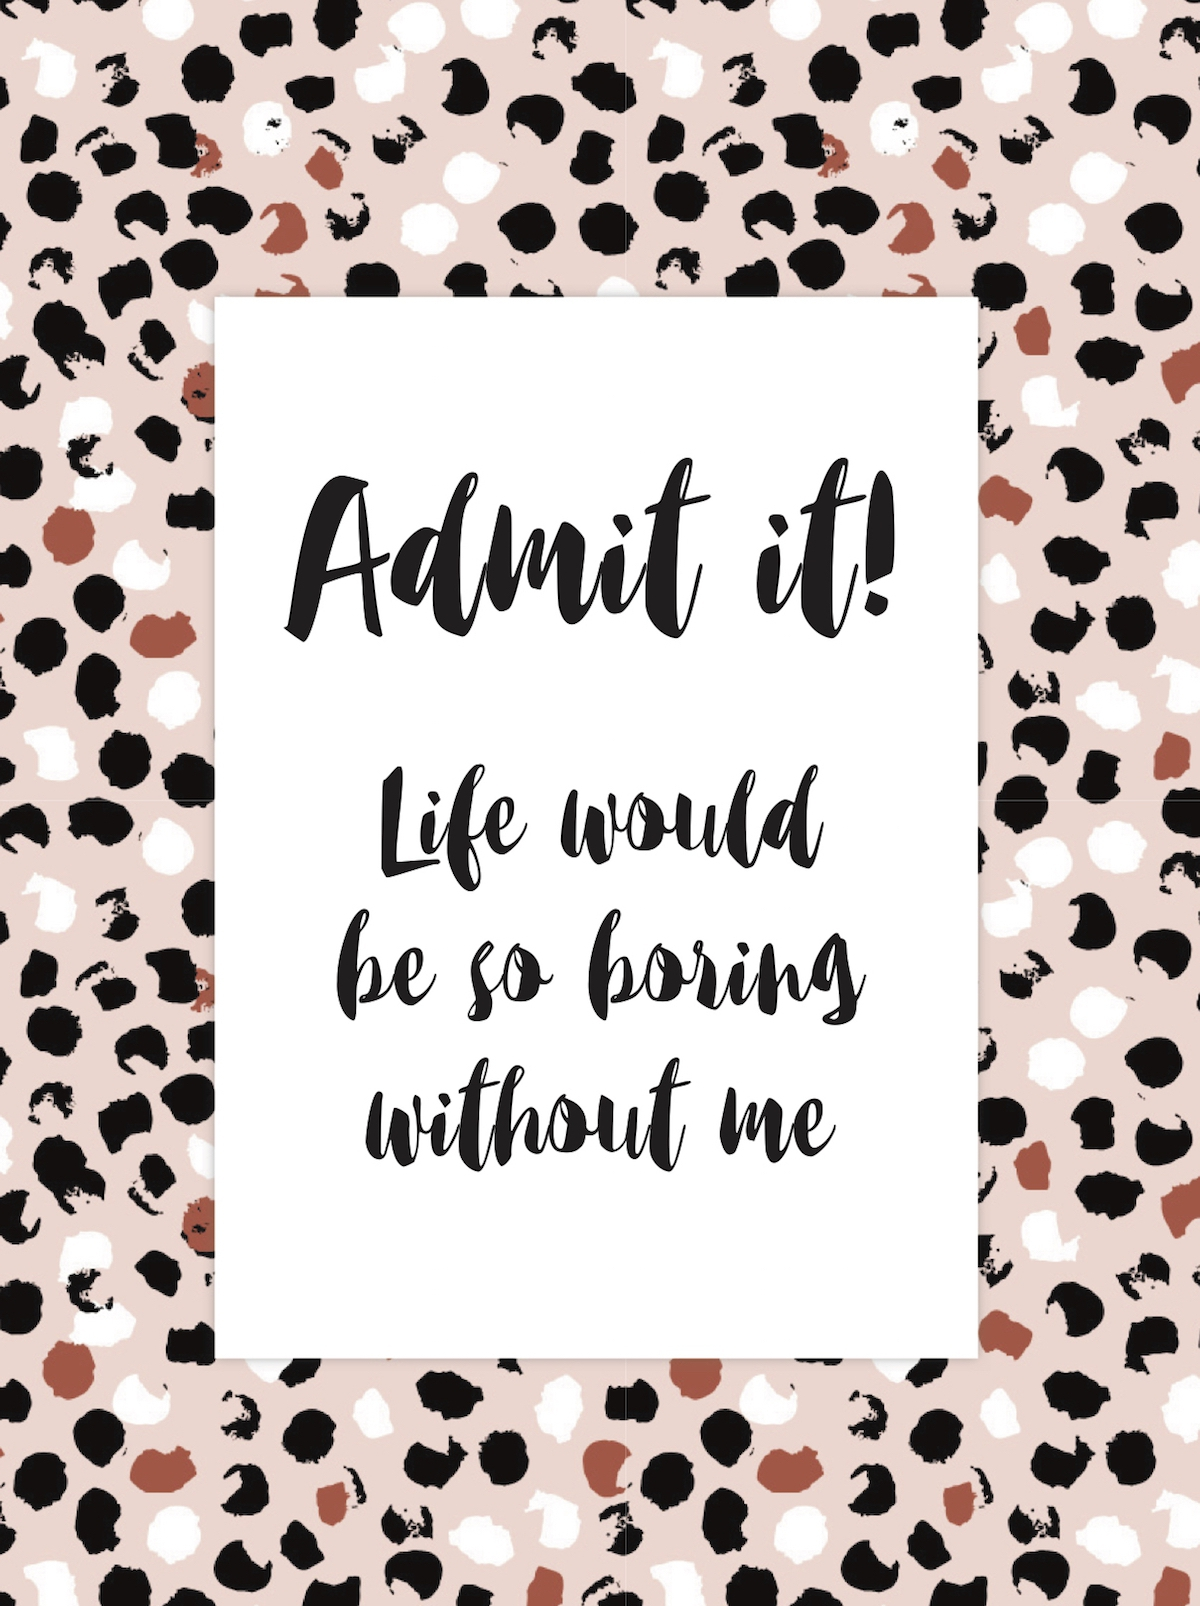 Spreuk van de week: Admit it! Life would be so boring without me